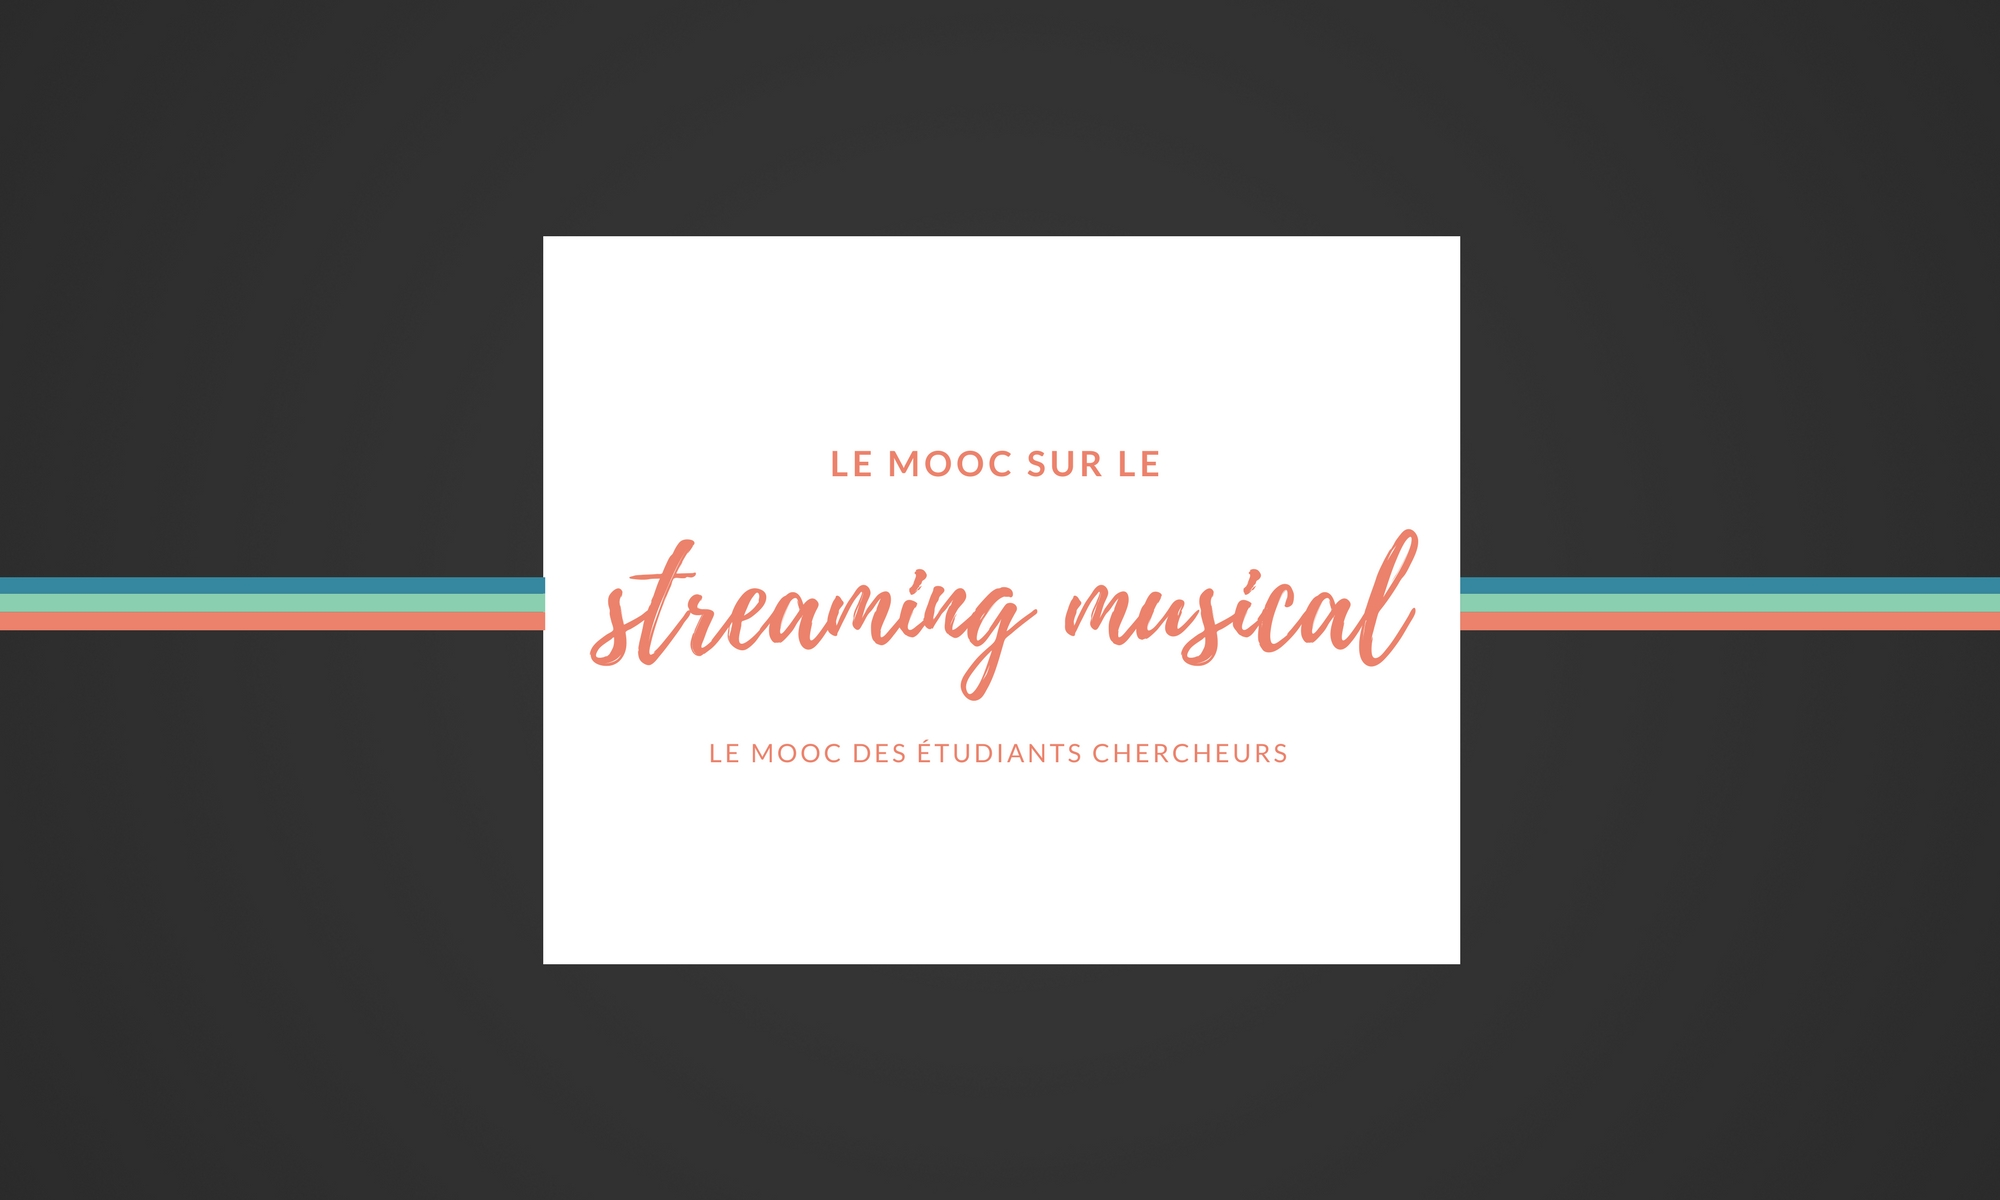 Le streaming musical - Mooc